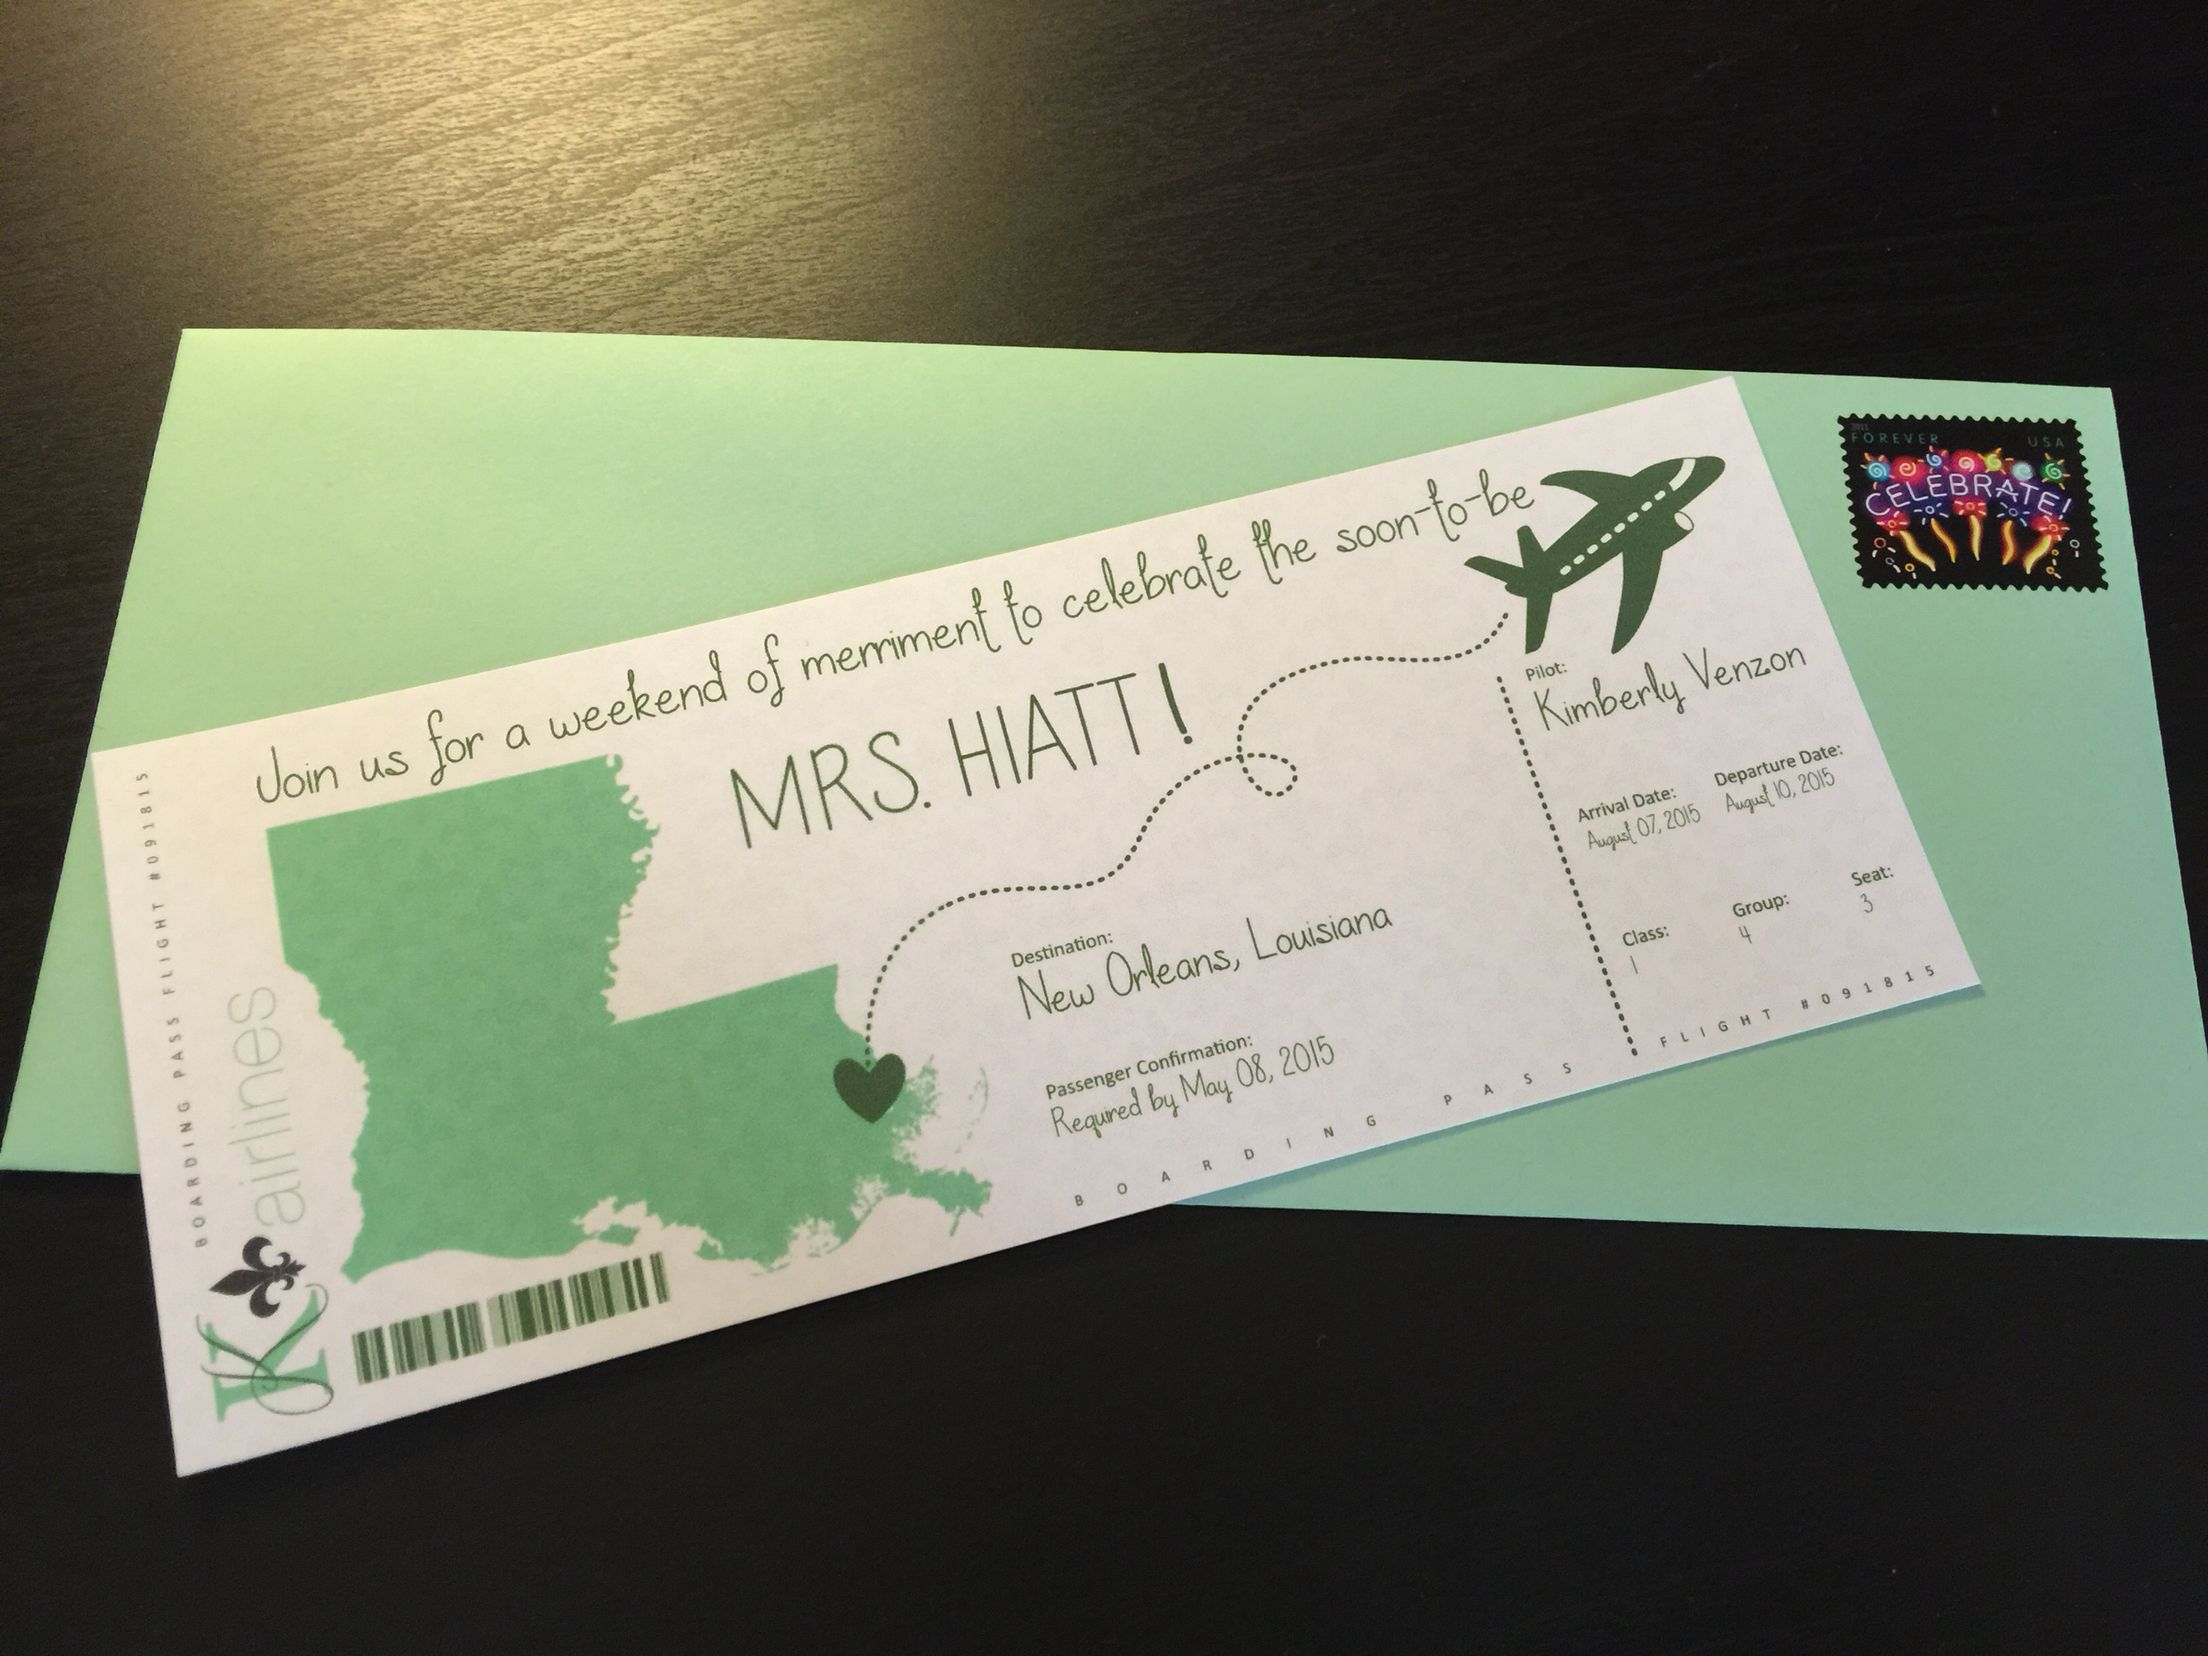 New Orleans bachelorette party boarding pass invites created from ...